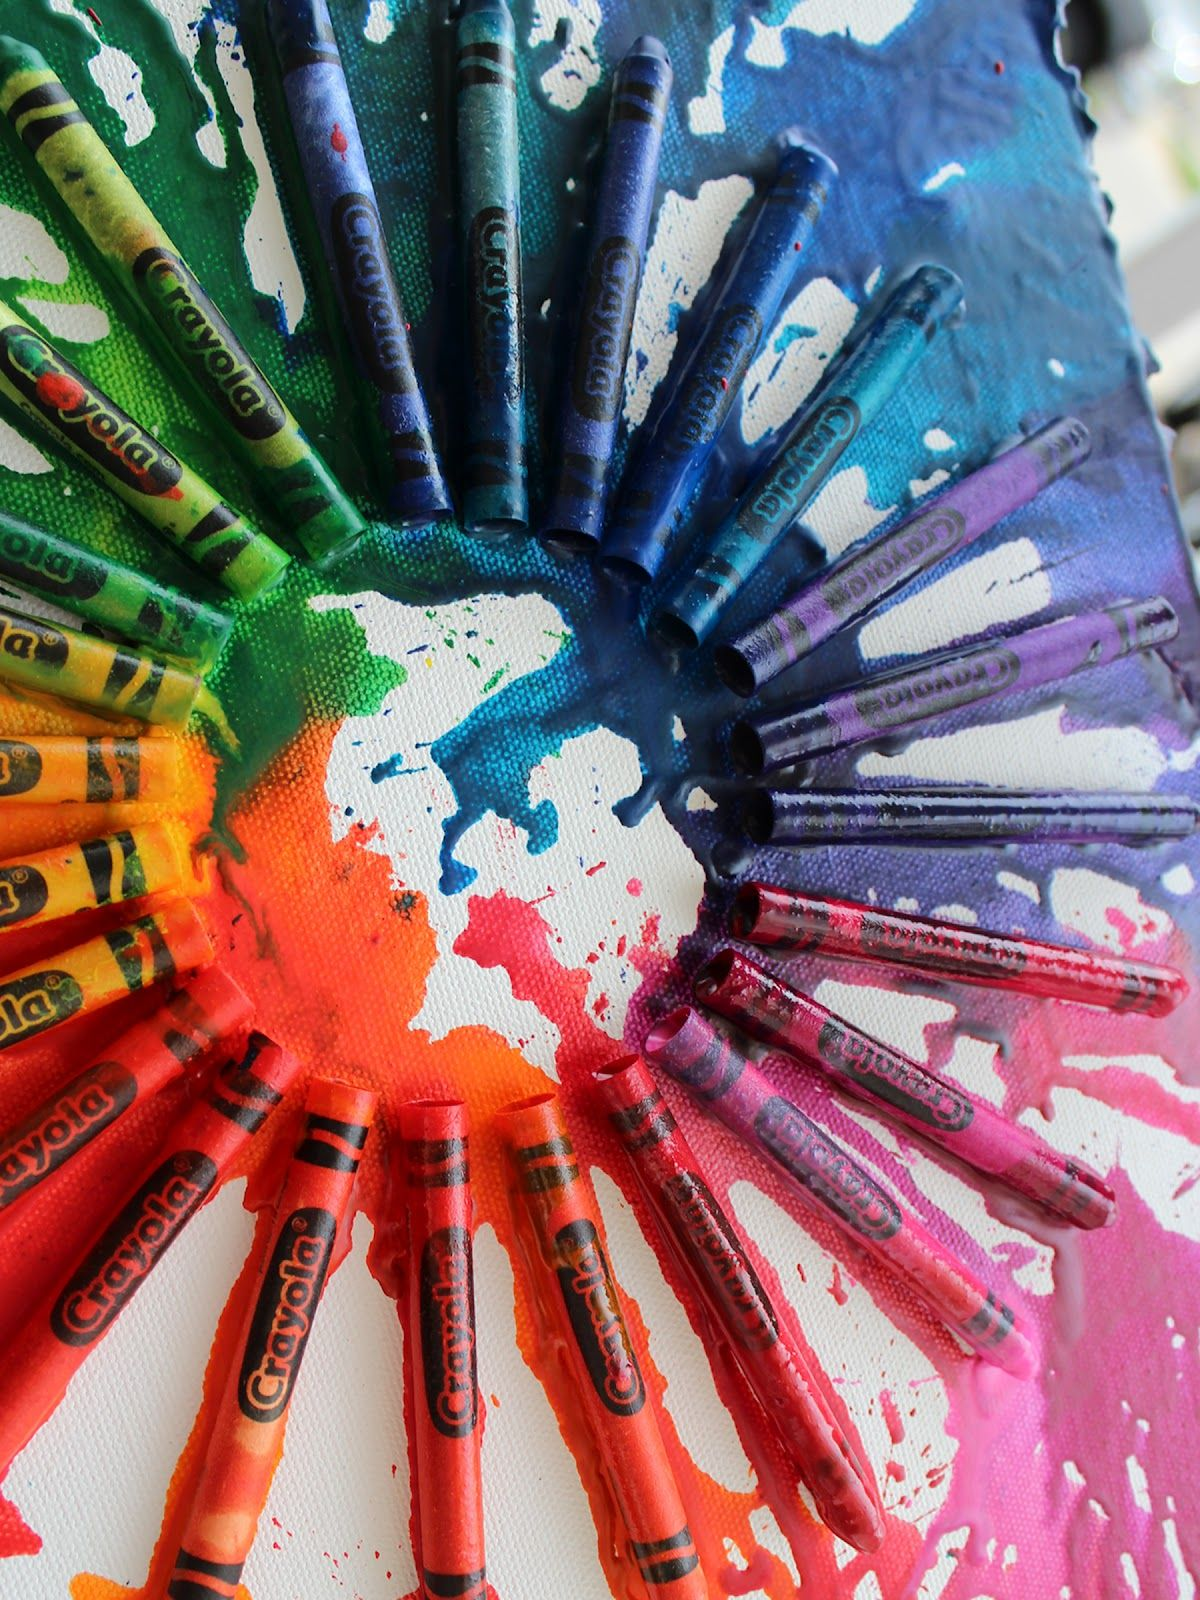 color crayon art : Exploring Color Crayon Art Want A Fun Easy Project To Do Try Melting Crayons